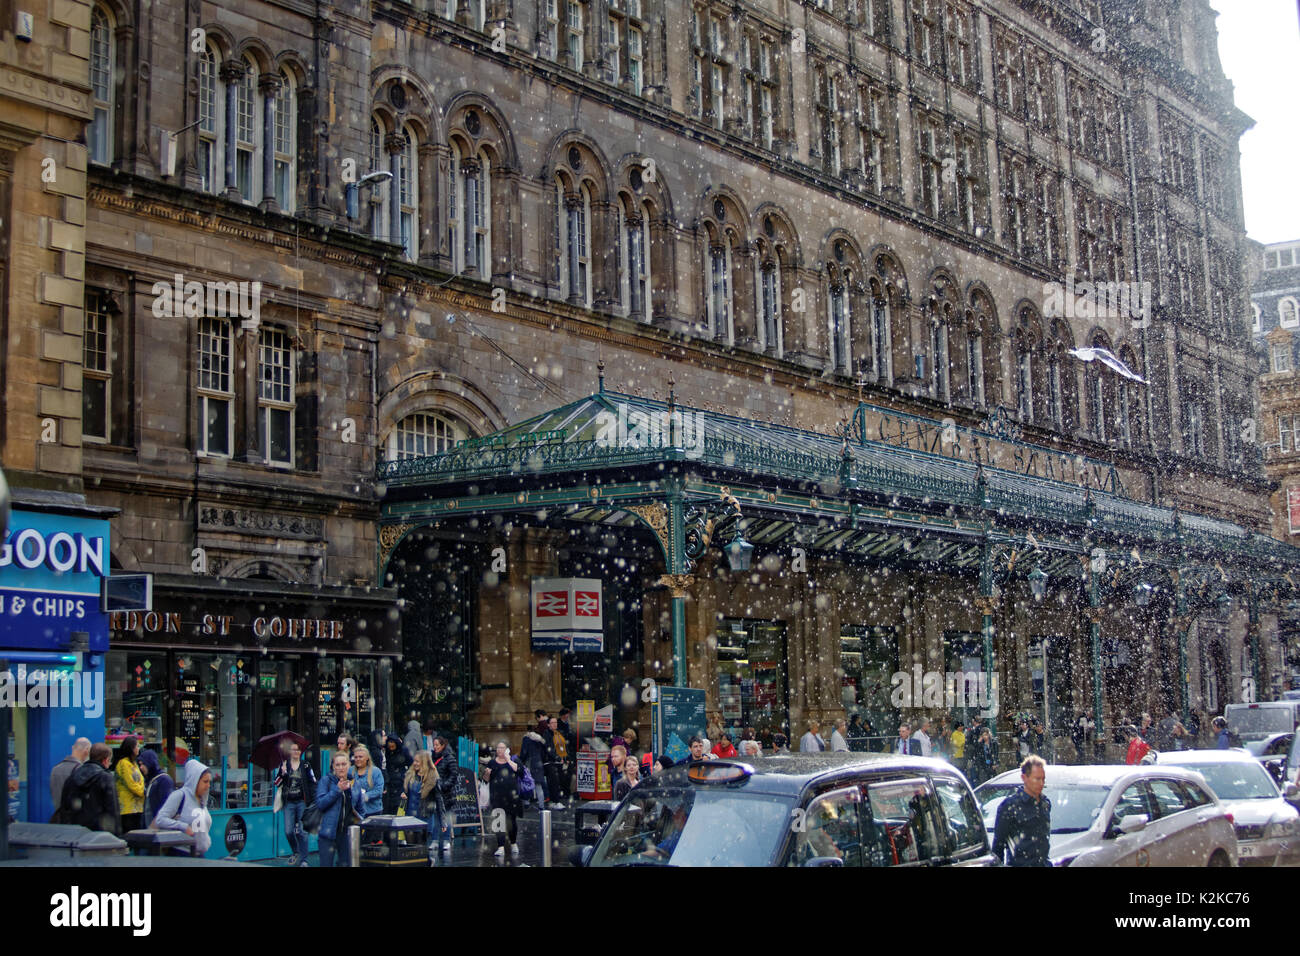 Glasgow, Scotland, UK. 30th Aug, 2017. UK Weather. Raining and sunny on the streets of the city often at the same tine as its poor summer weather continues.central station enjoys a downpour of sleet like rain Credit: gerard ferry/Alamy Live News - Stock Image